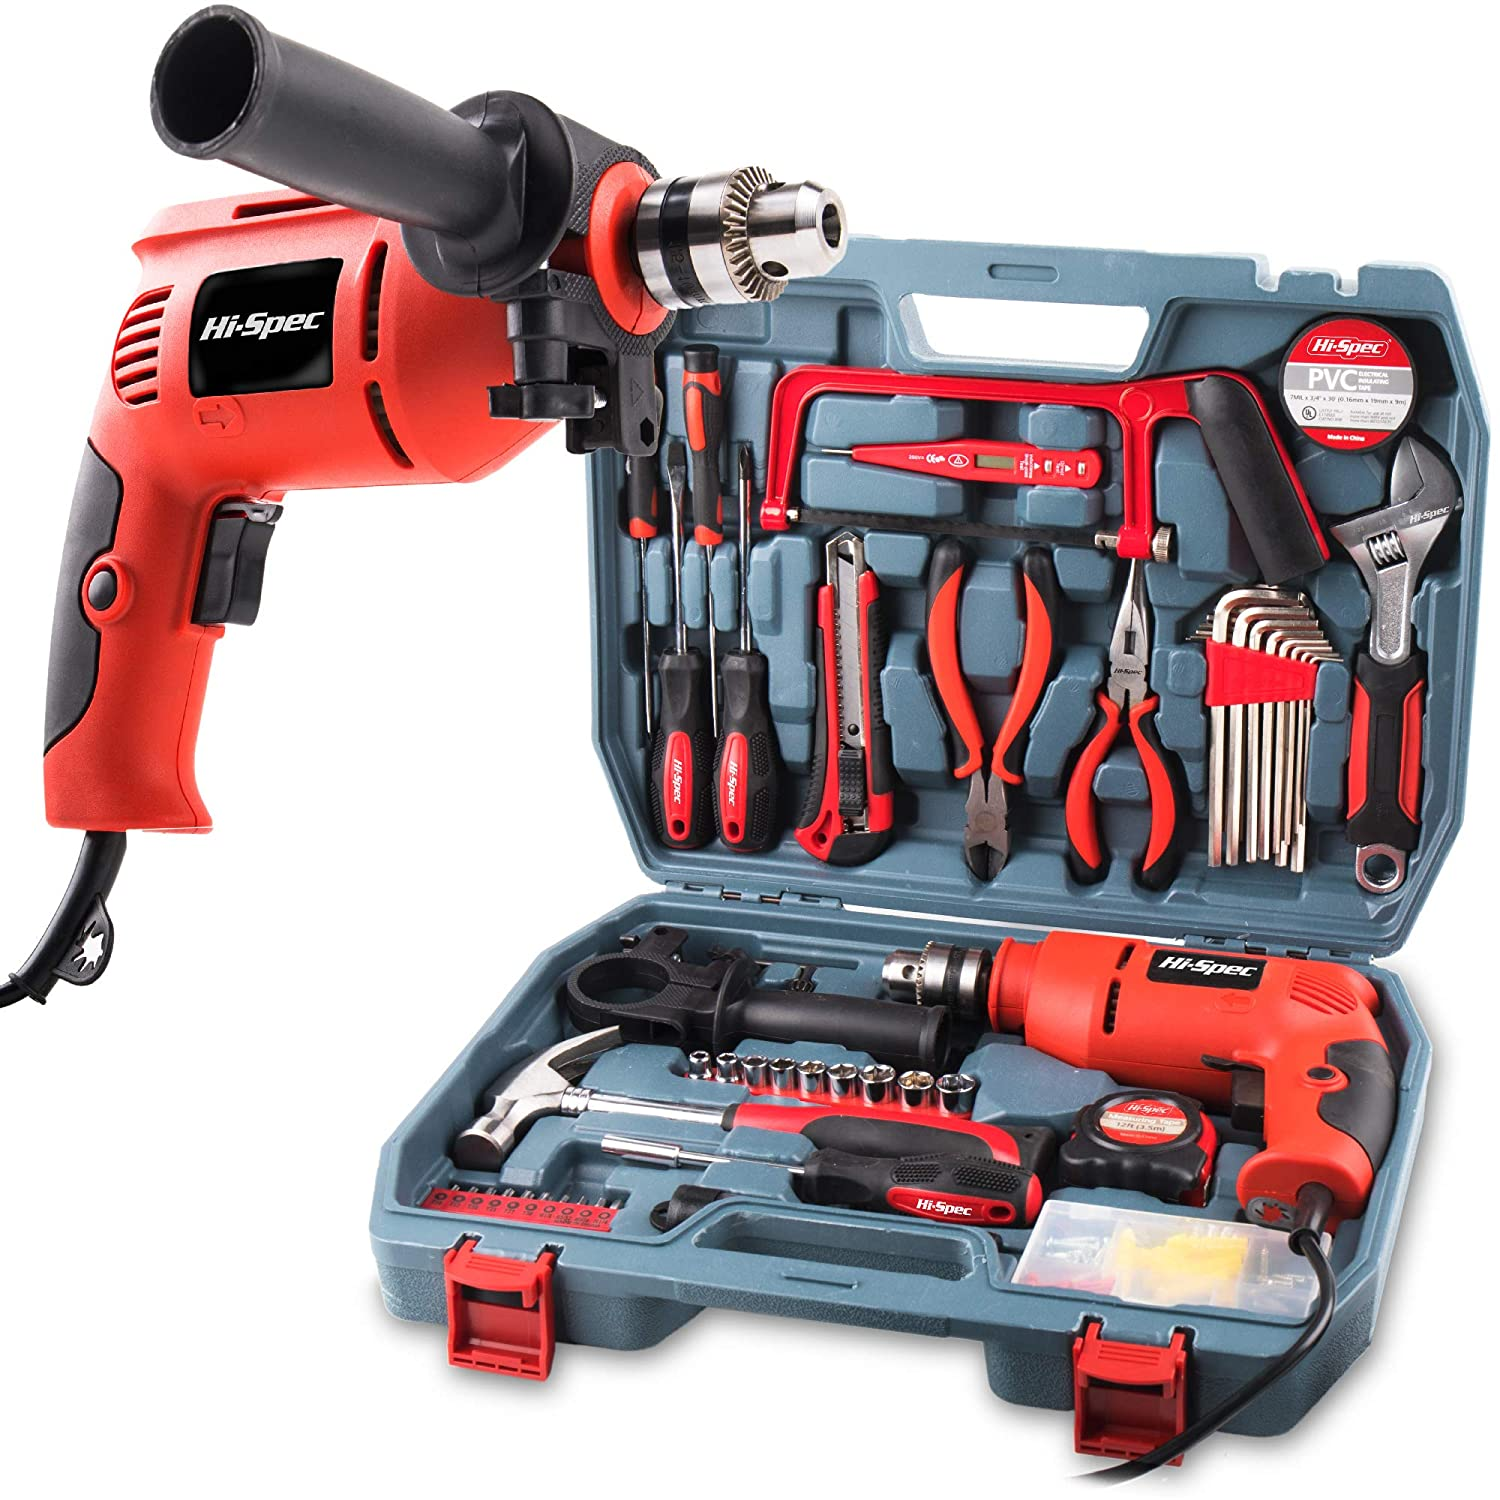 Hi-Spec 26 Piece Household Tool Kit Including 12V Cordless Drill Driver with 800 mAh Ni-MH Rechargeable 16 Position Keyless Torque Clutch, Variable Speed Switch, Drill & Screwdriver Accessory Set Hi-Spec Products